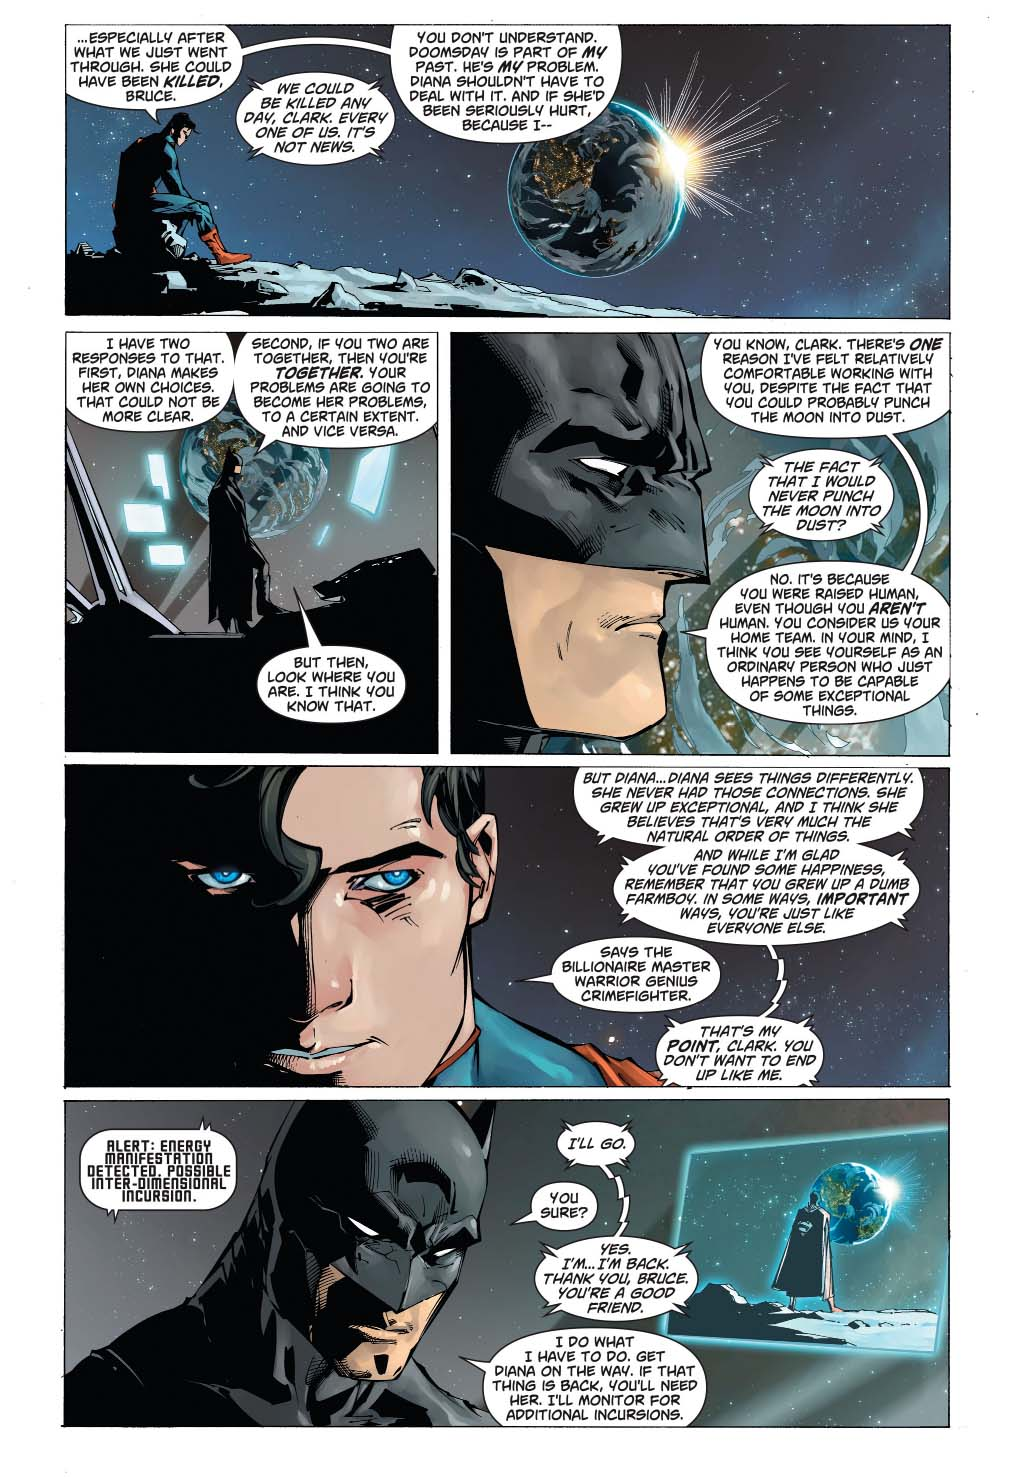 Great New52 Superman Character Moments - Page 7-3583